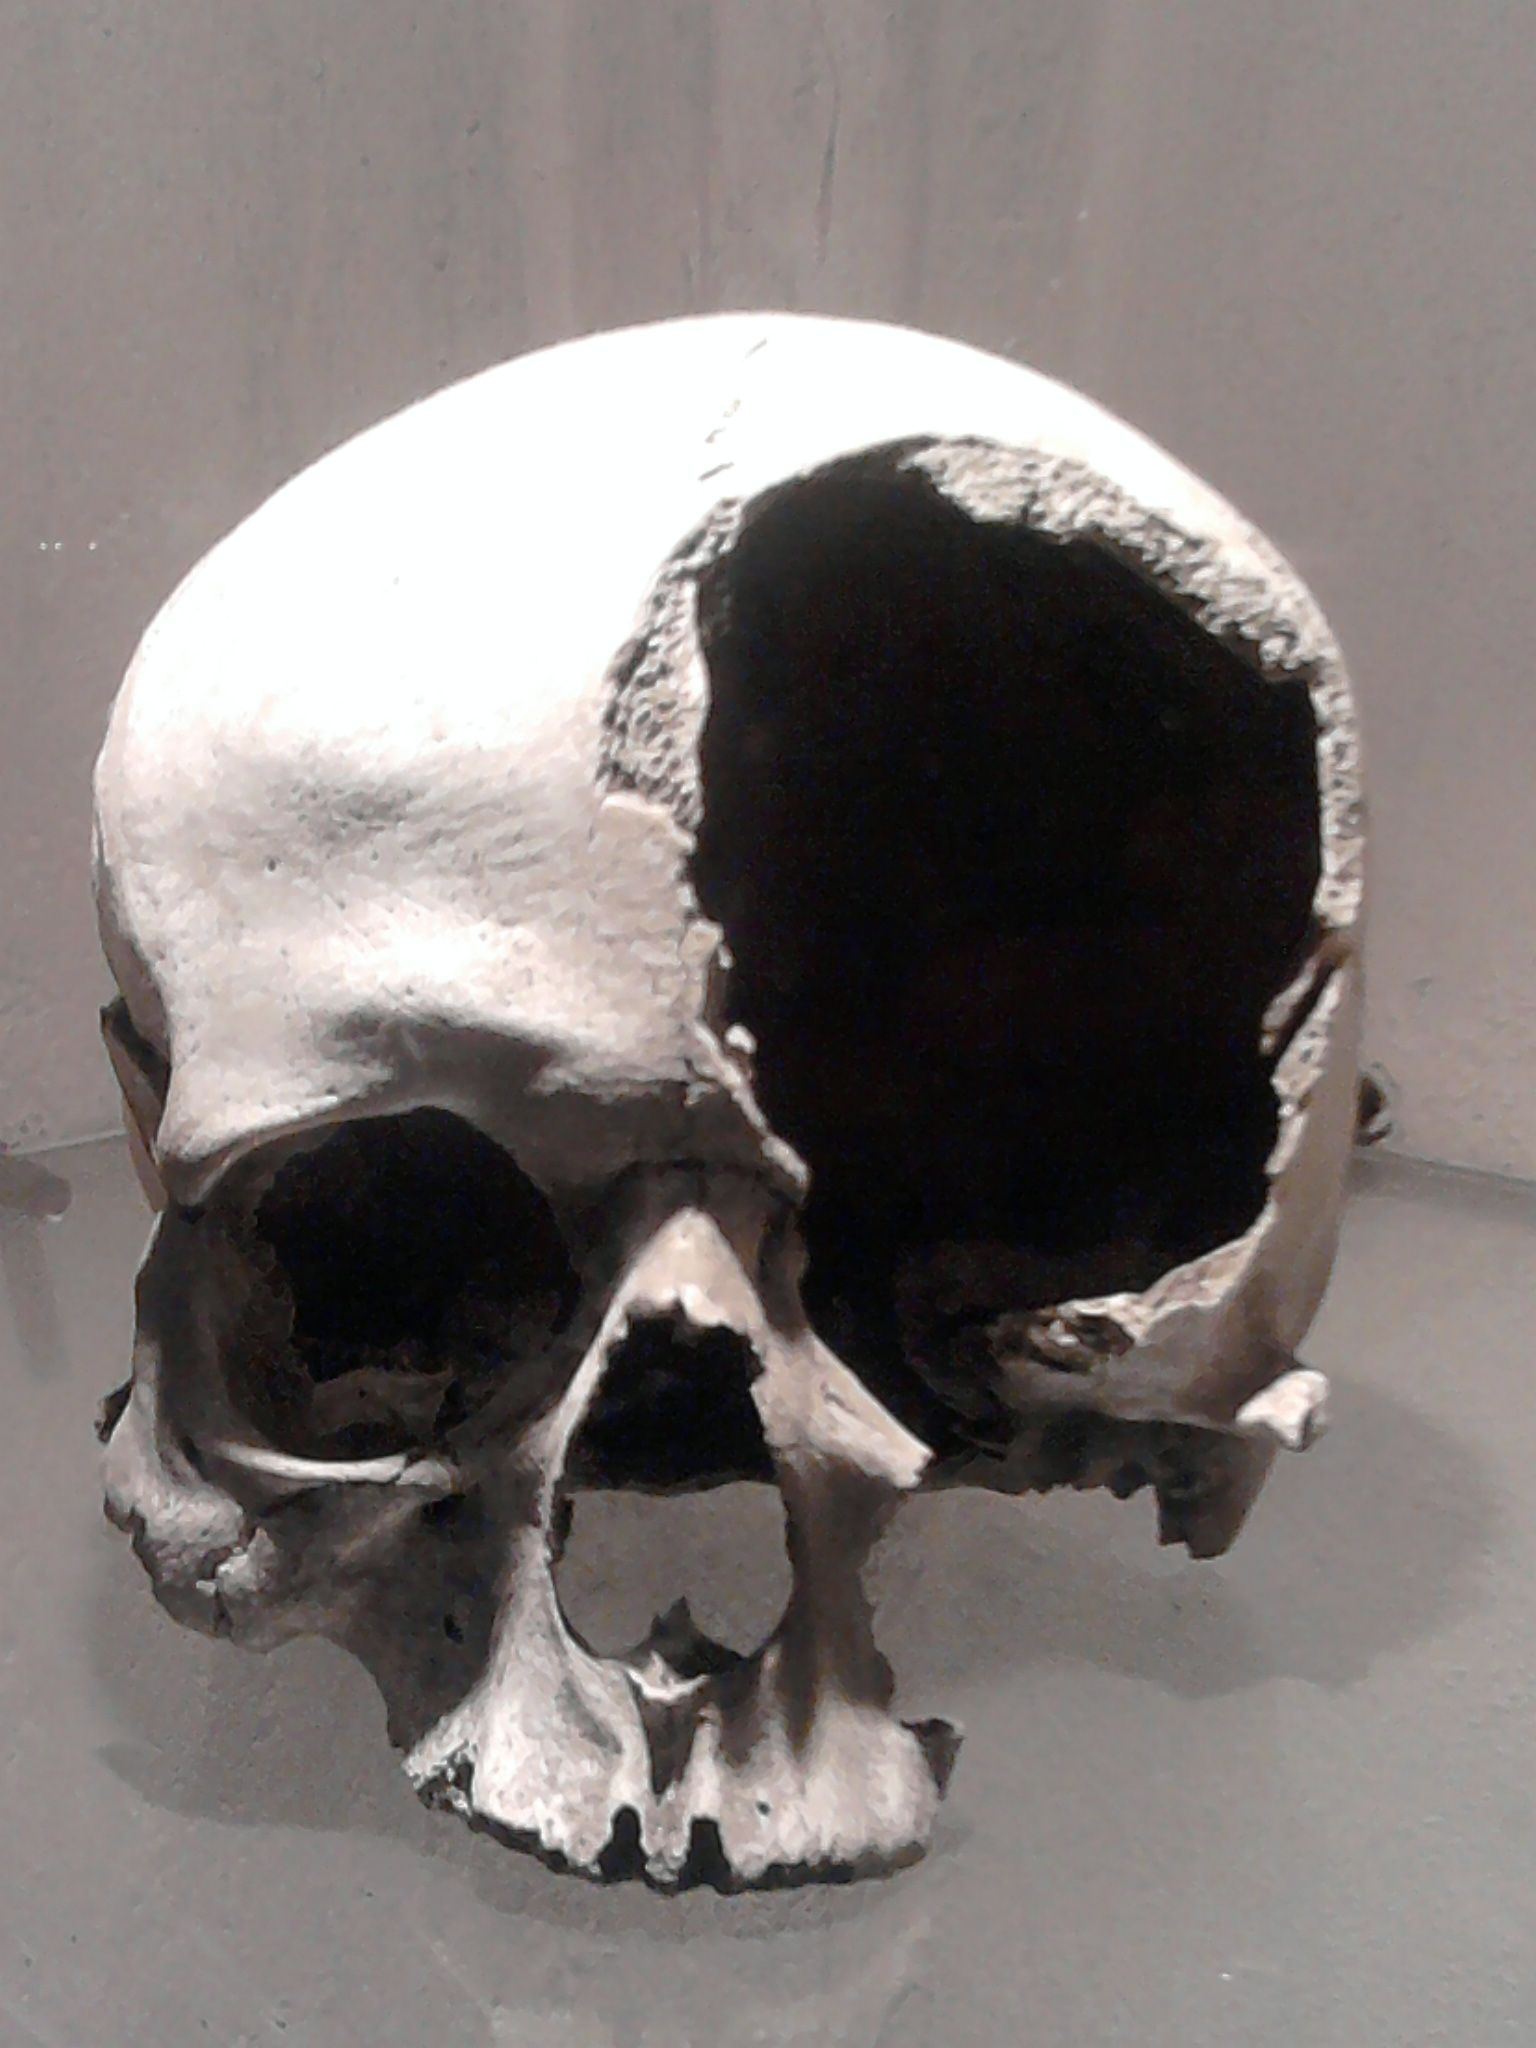 A medieval, bashed-in skull.